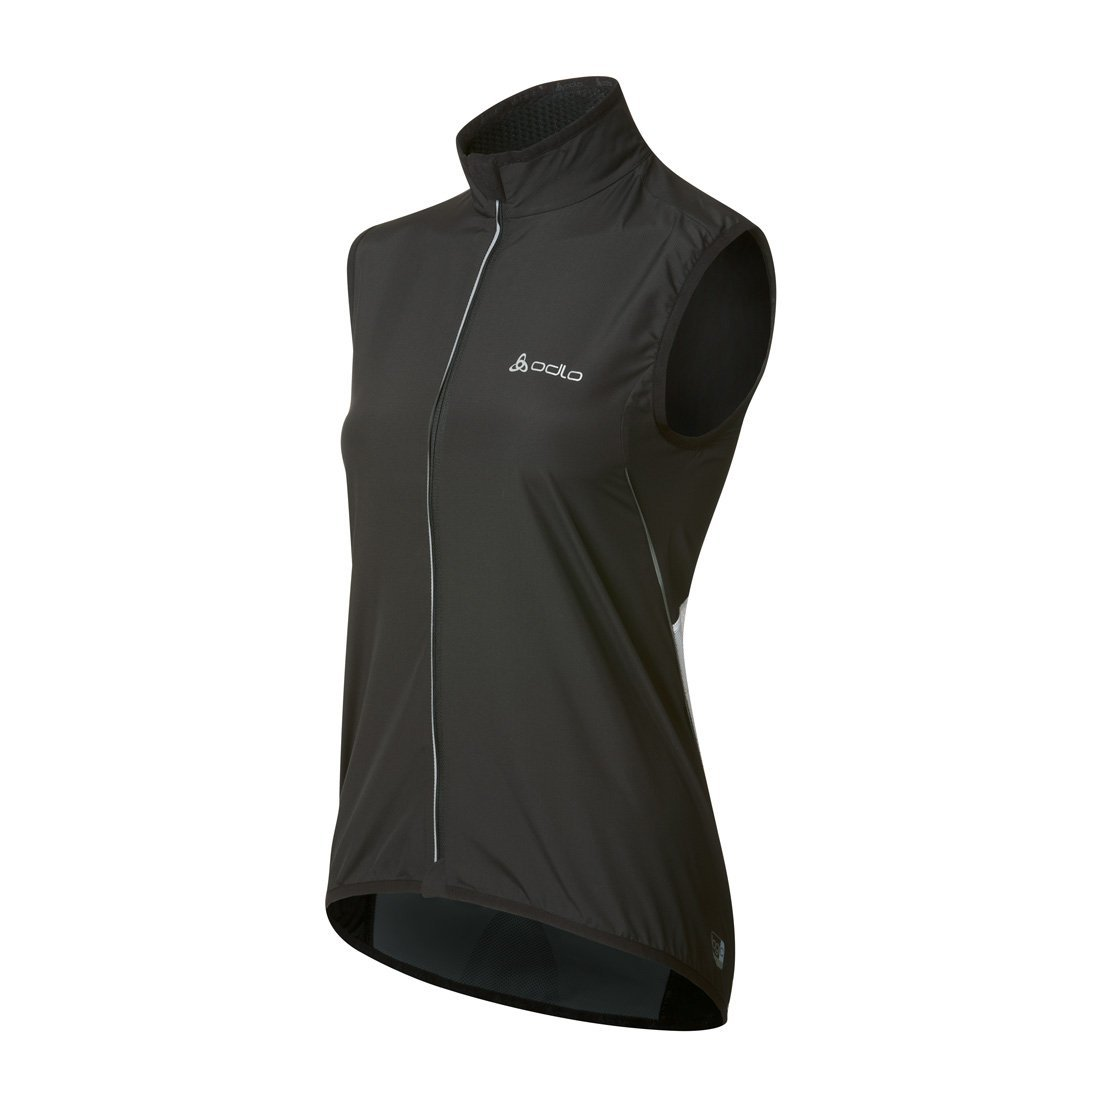 Odlo Women's Vest Flame Cycling Windproof Large Black/White by Odlo (Image #1)